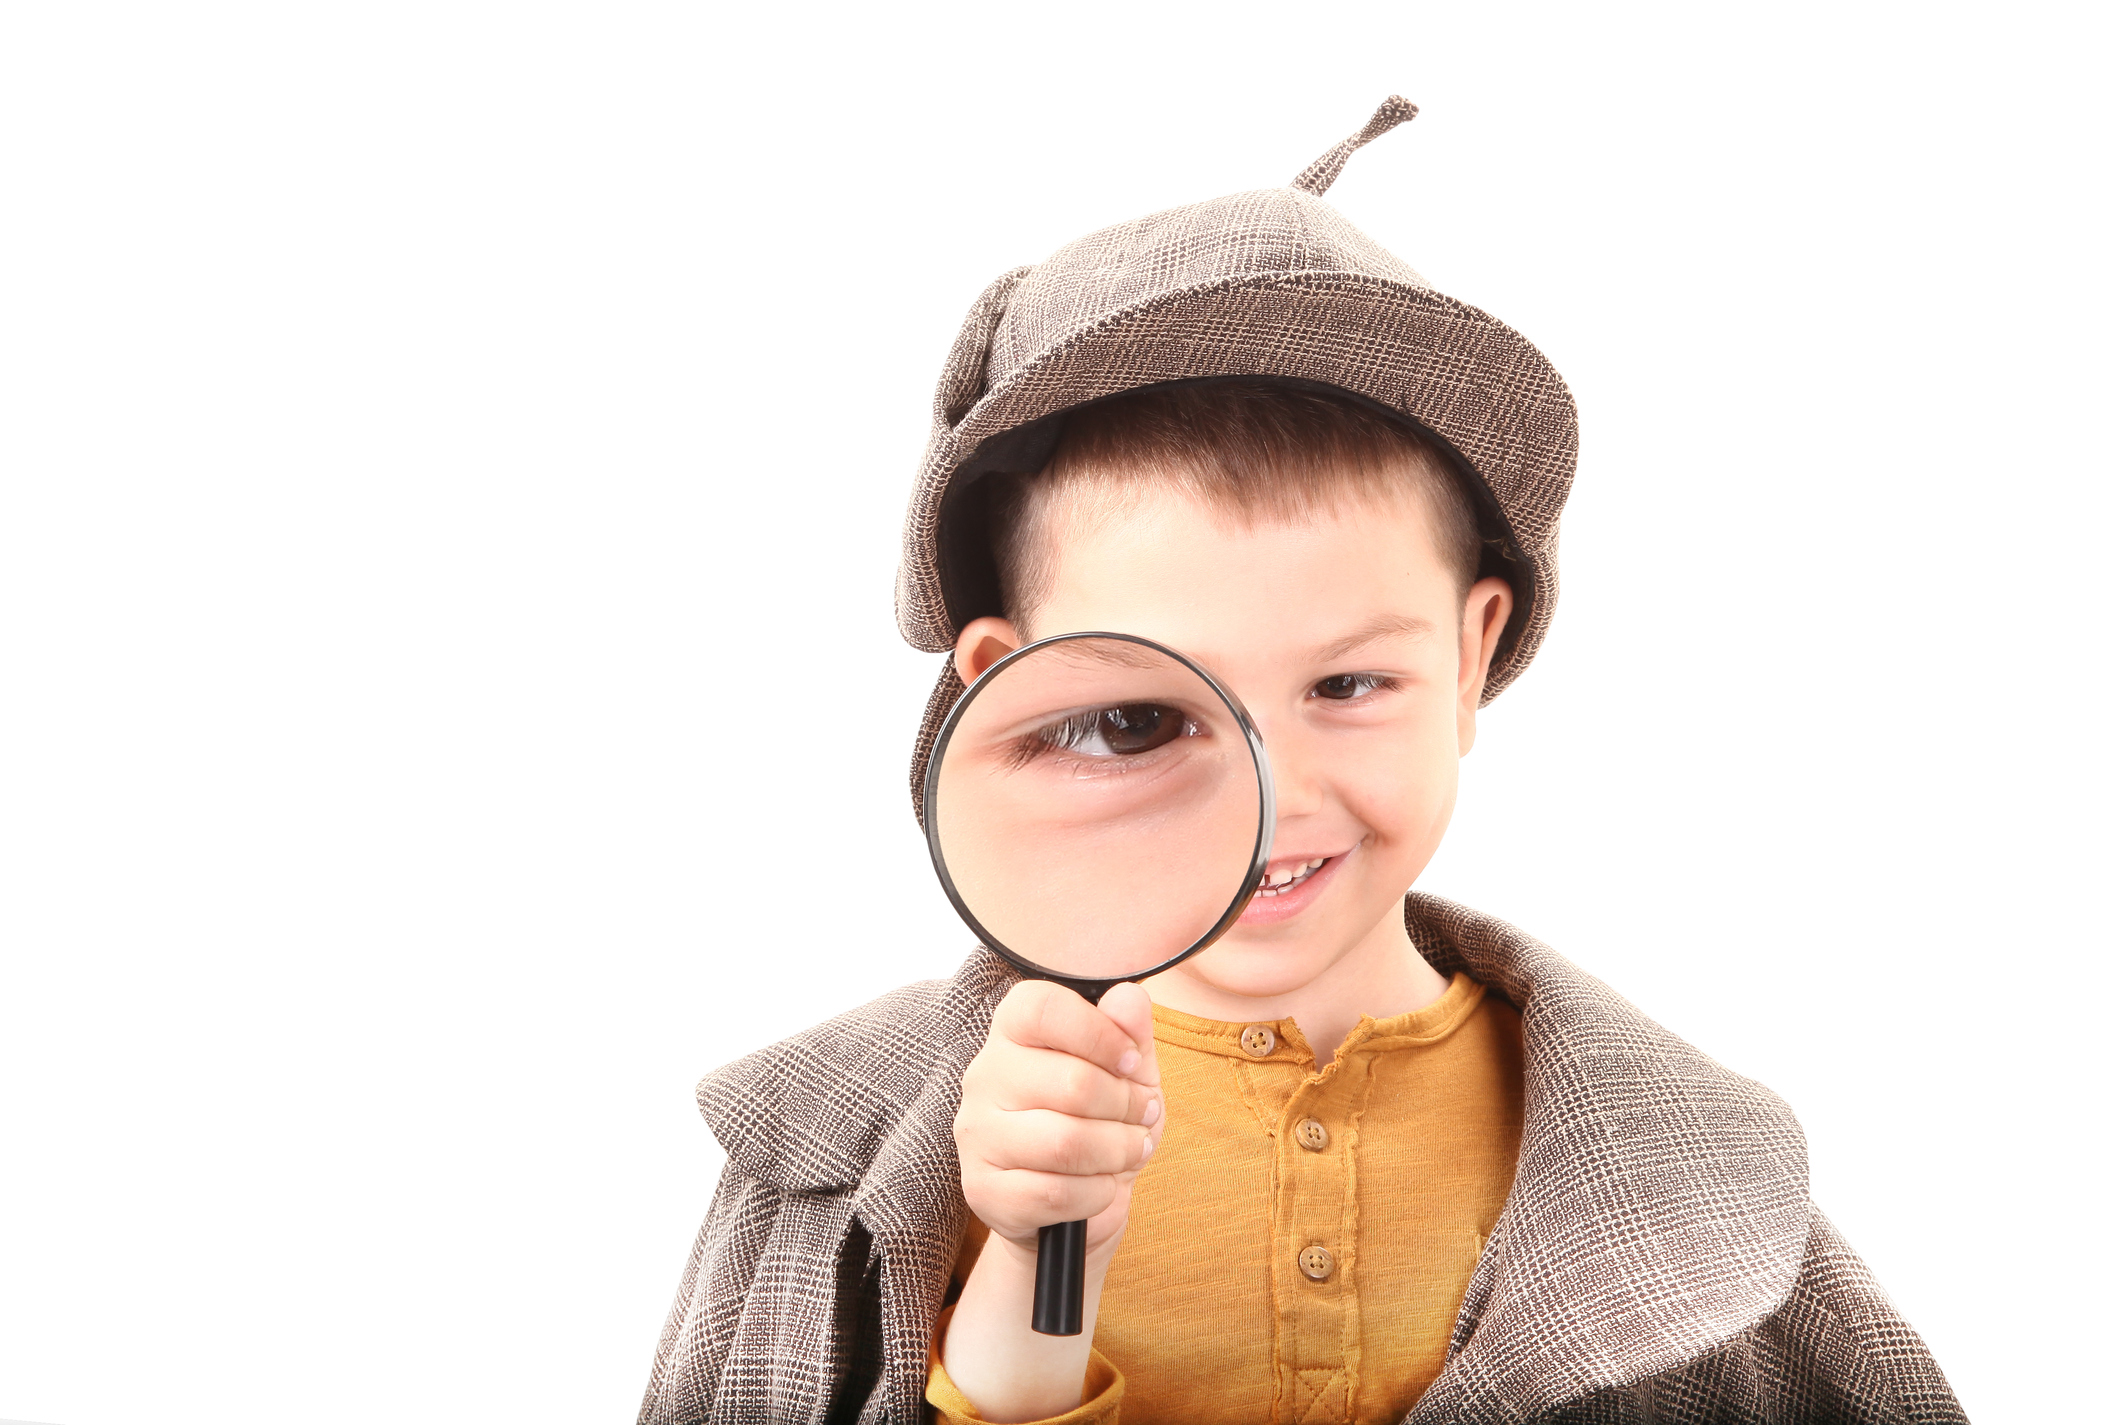 This detective boy is looking through magnifying glass.